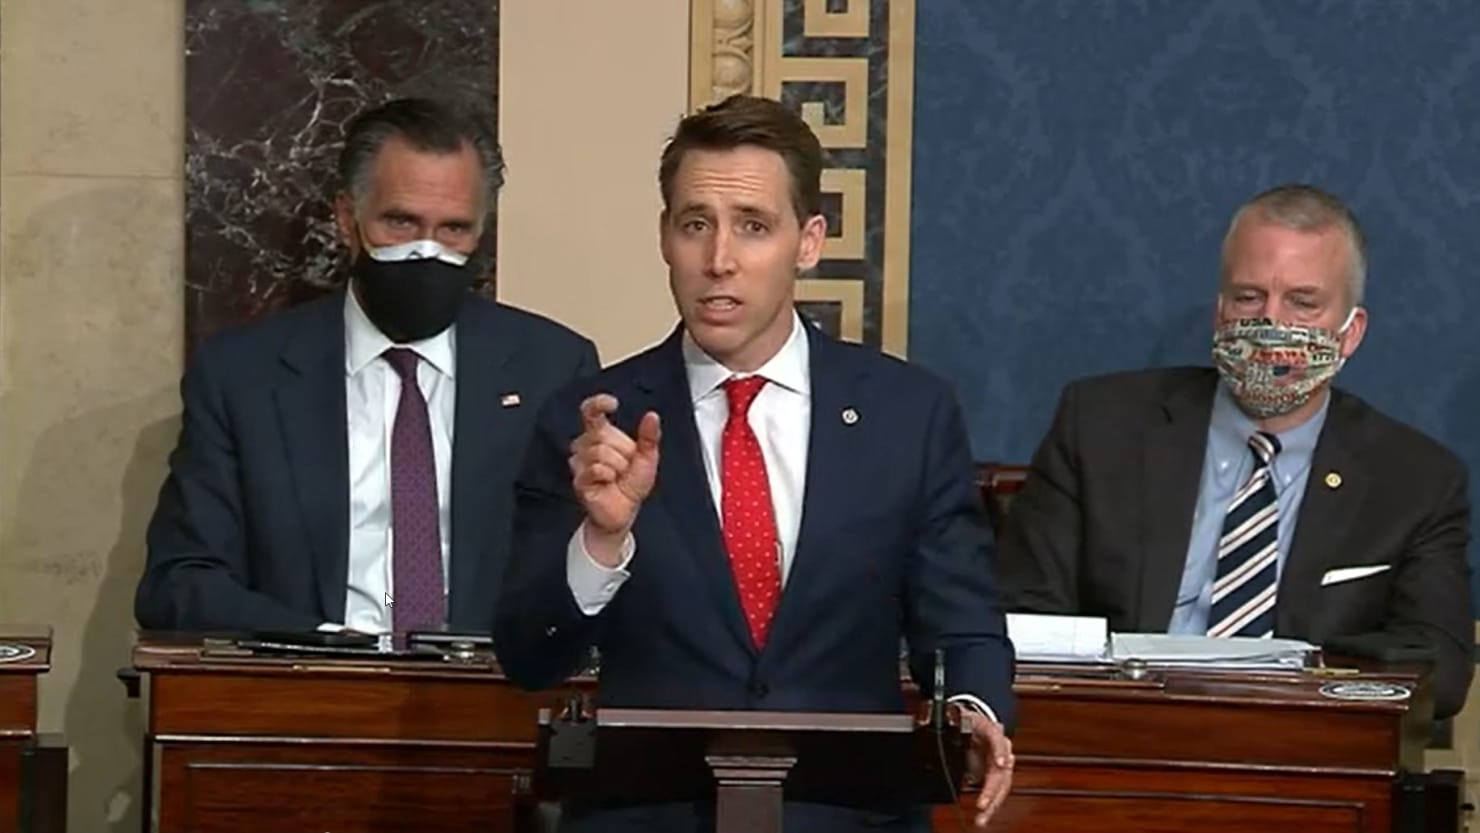 Show-Me State Tells Hawley to Show Himself Out, Poll Finds